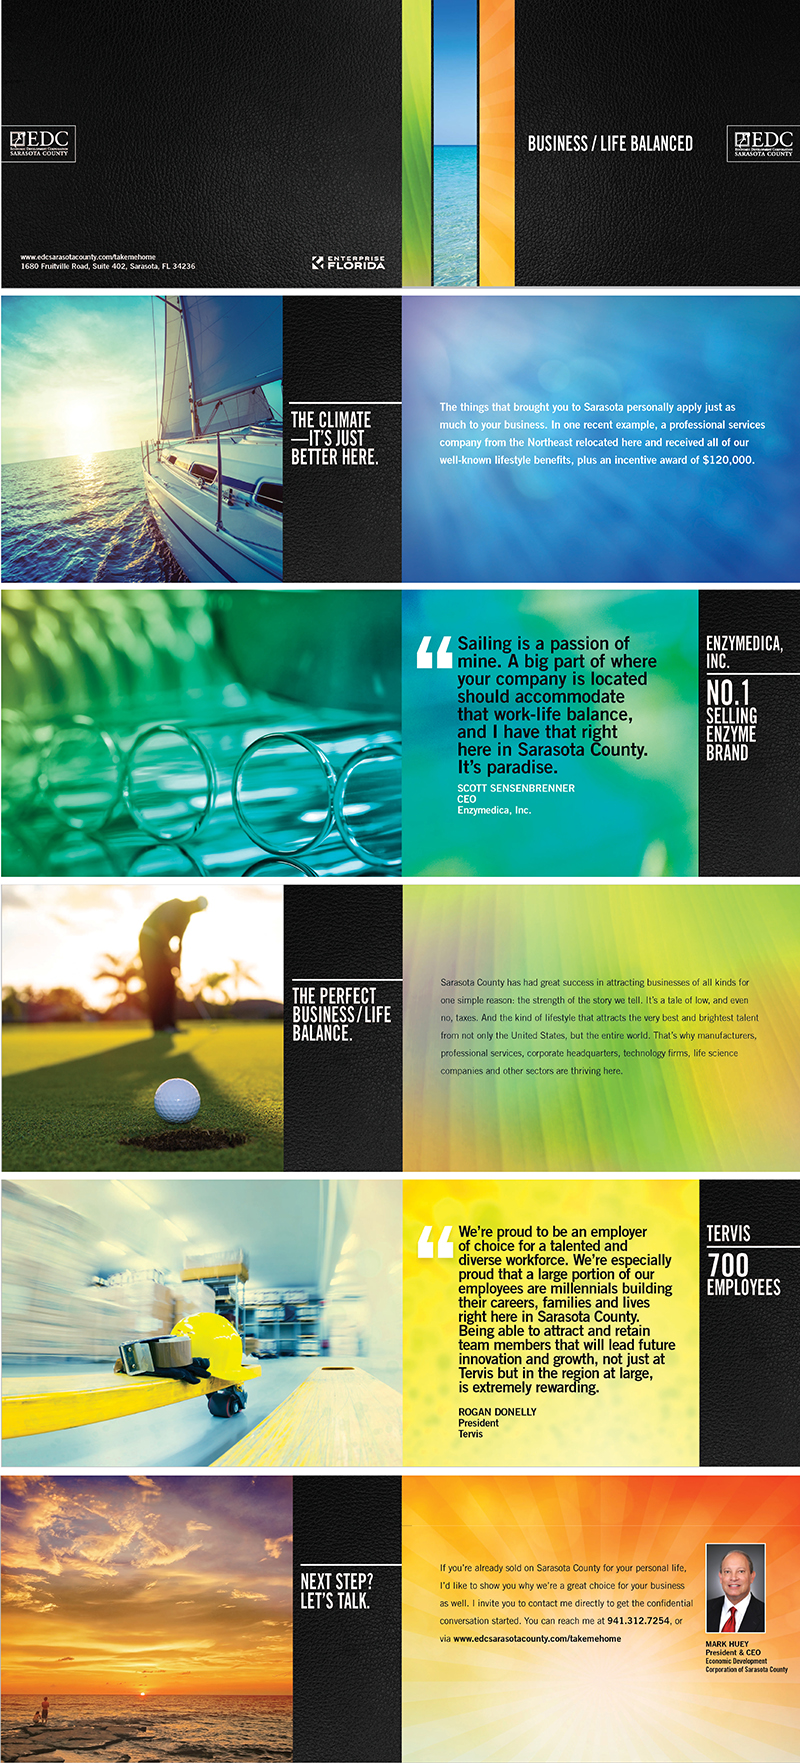 EDC_direct mail_HritzDesigns